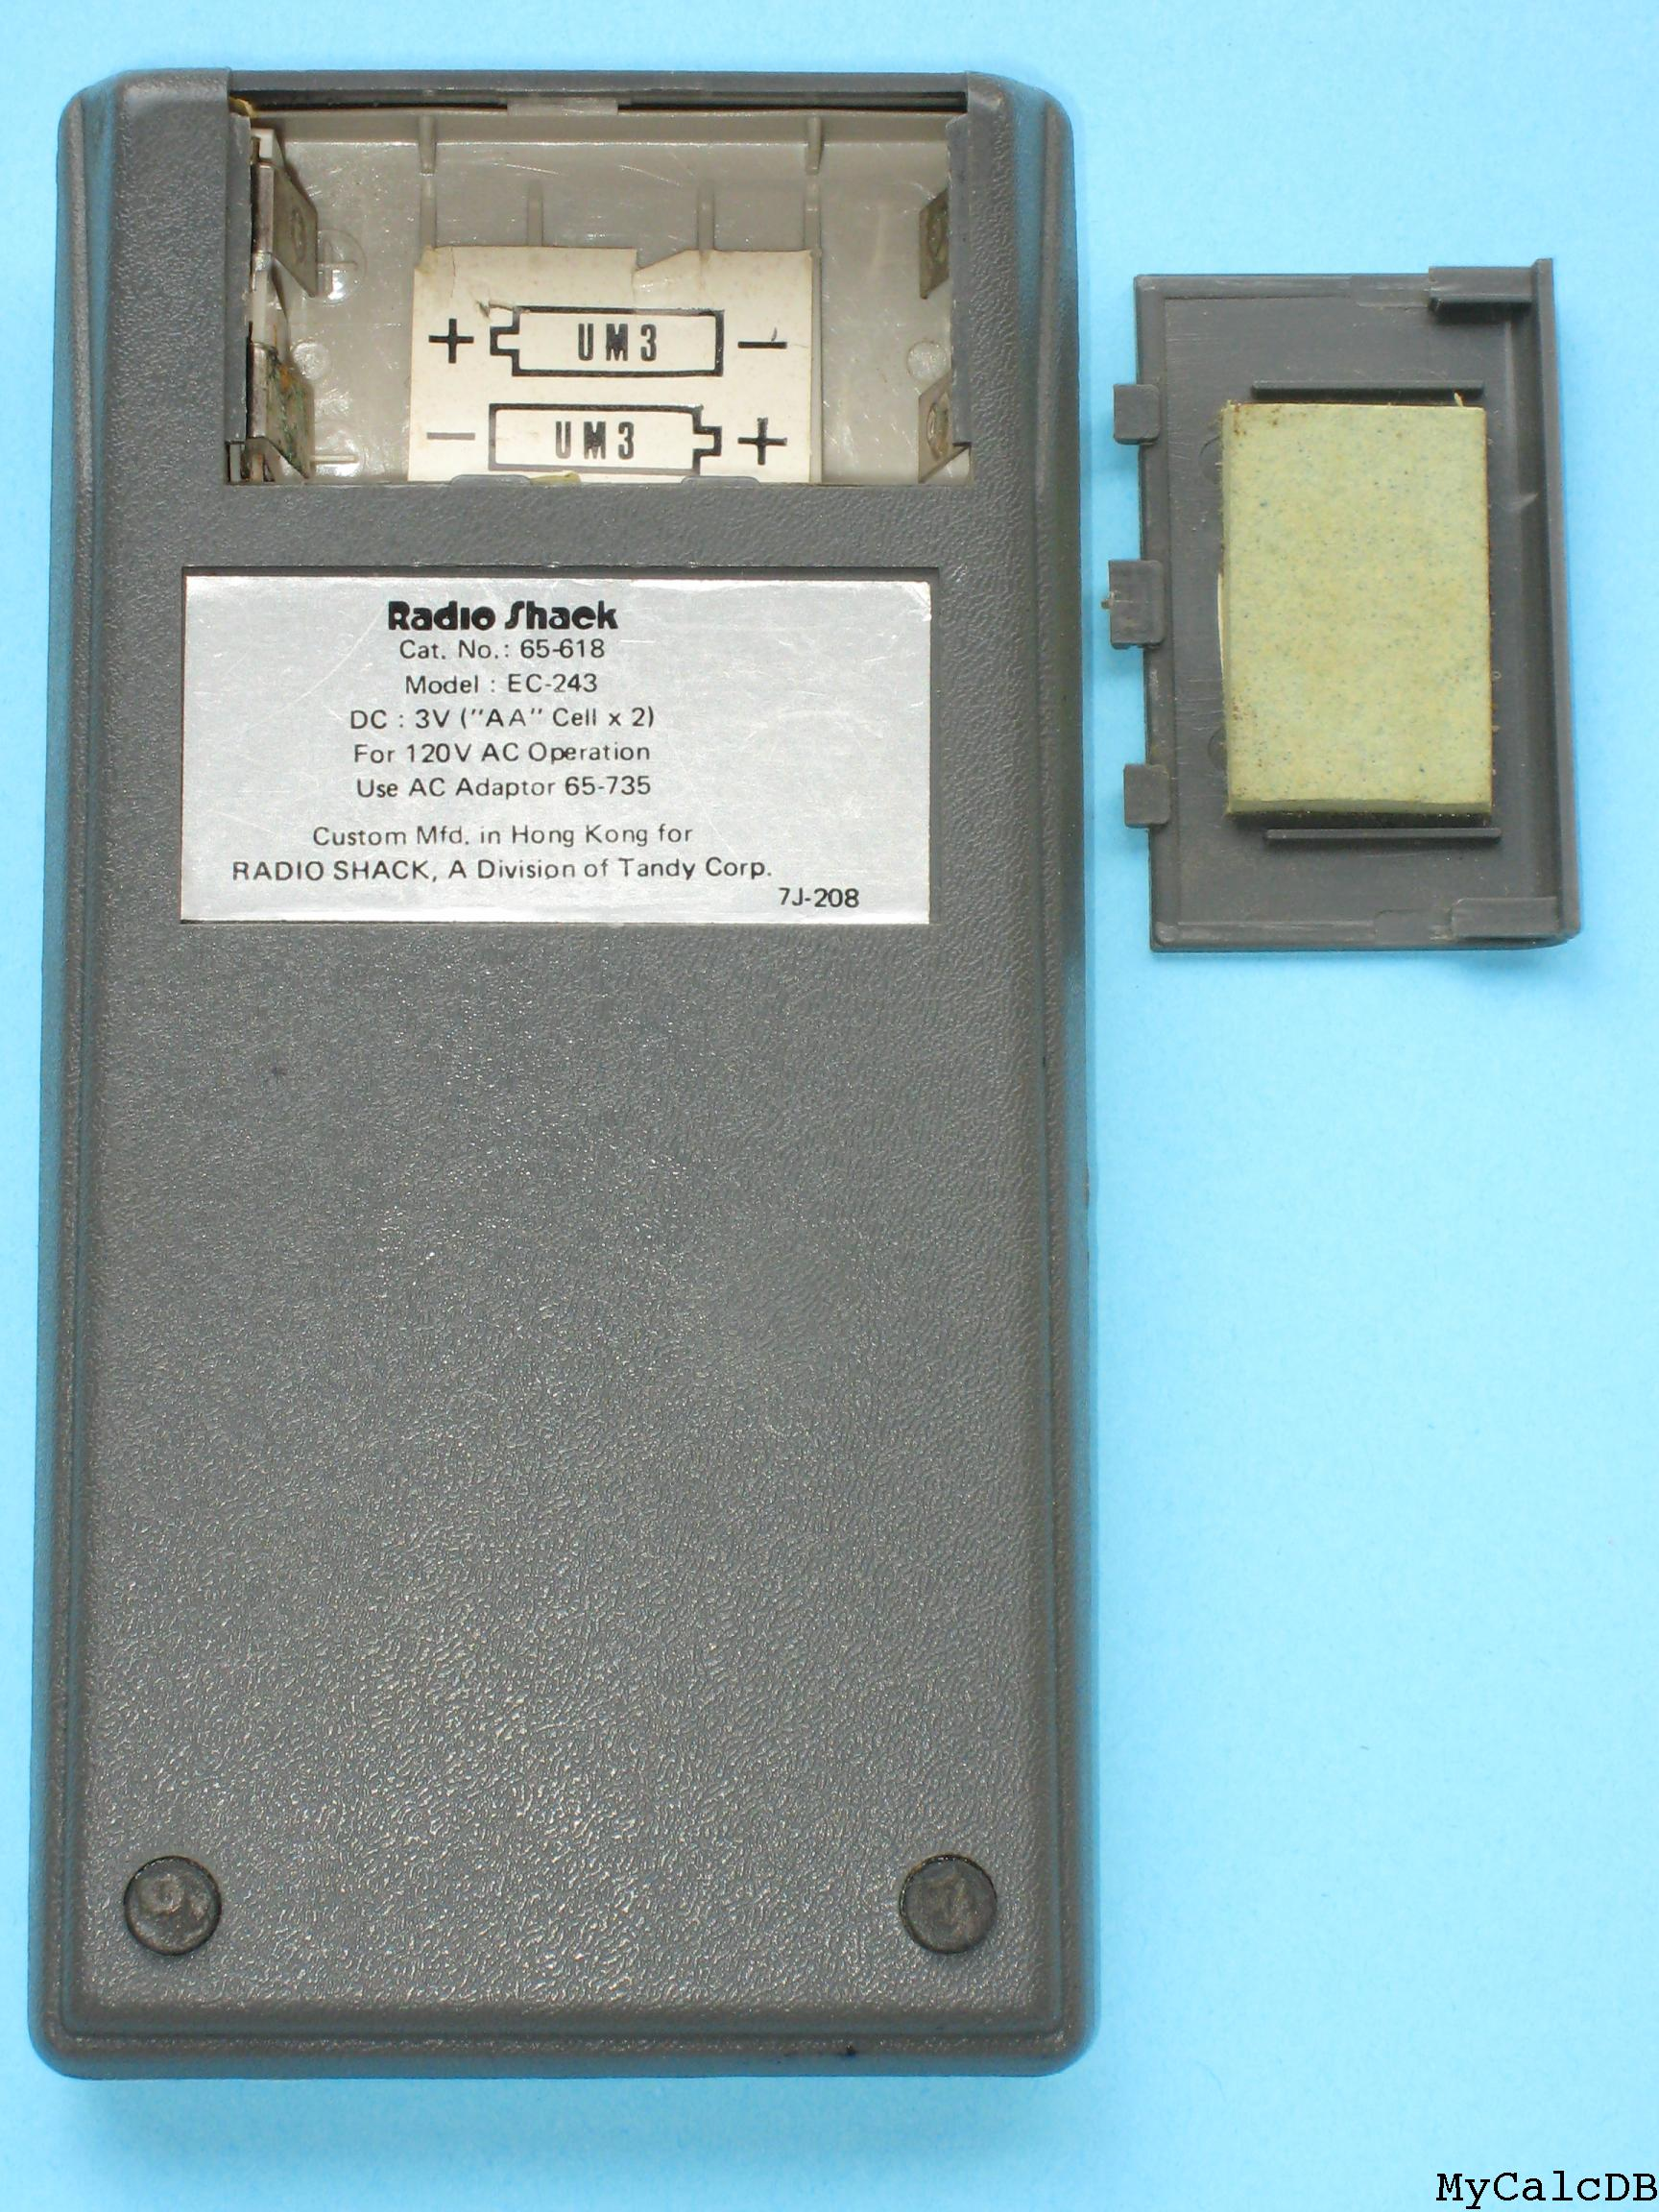 Radio Shack EC-243